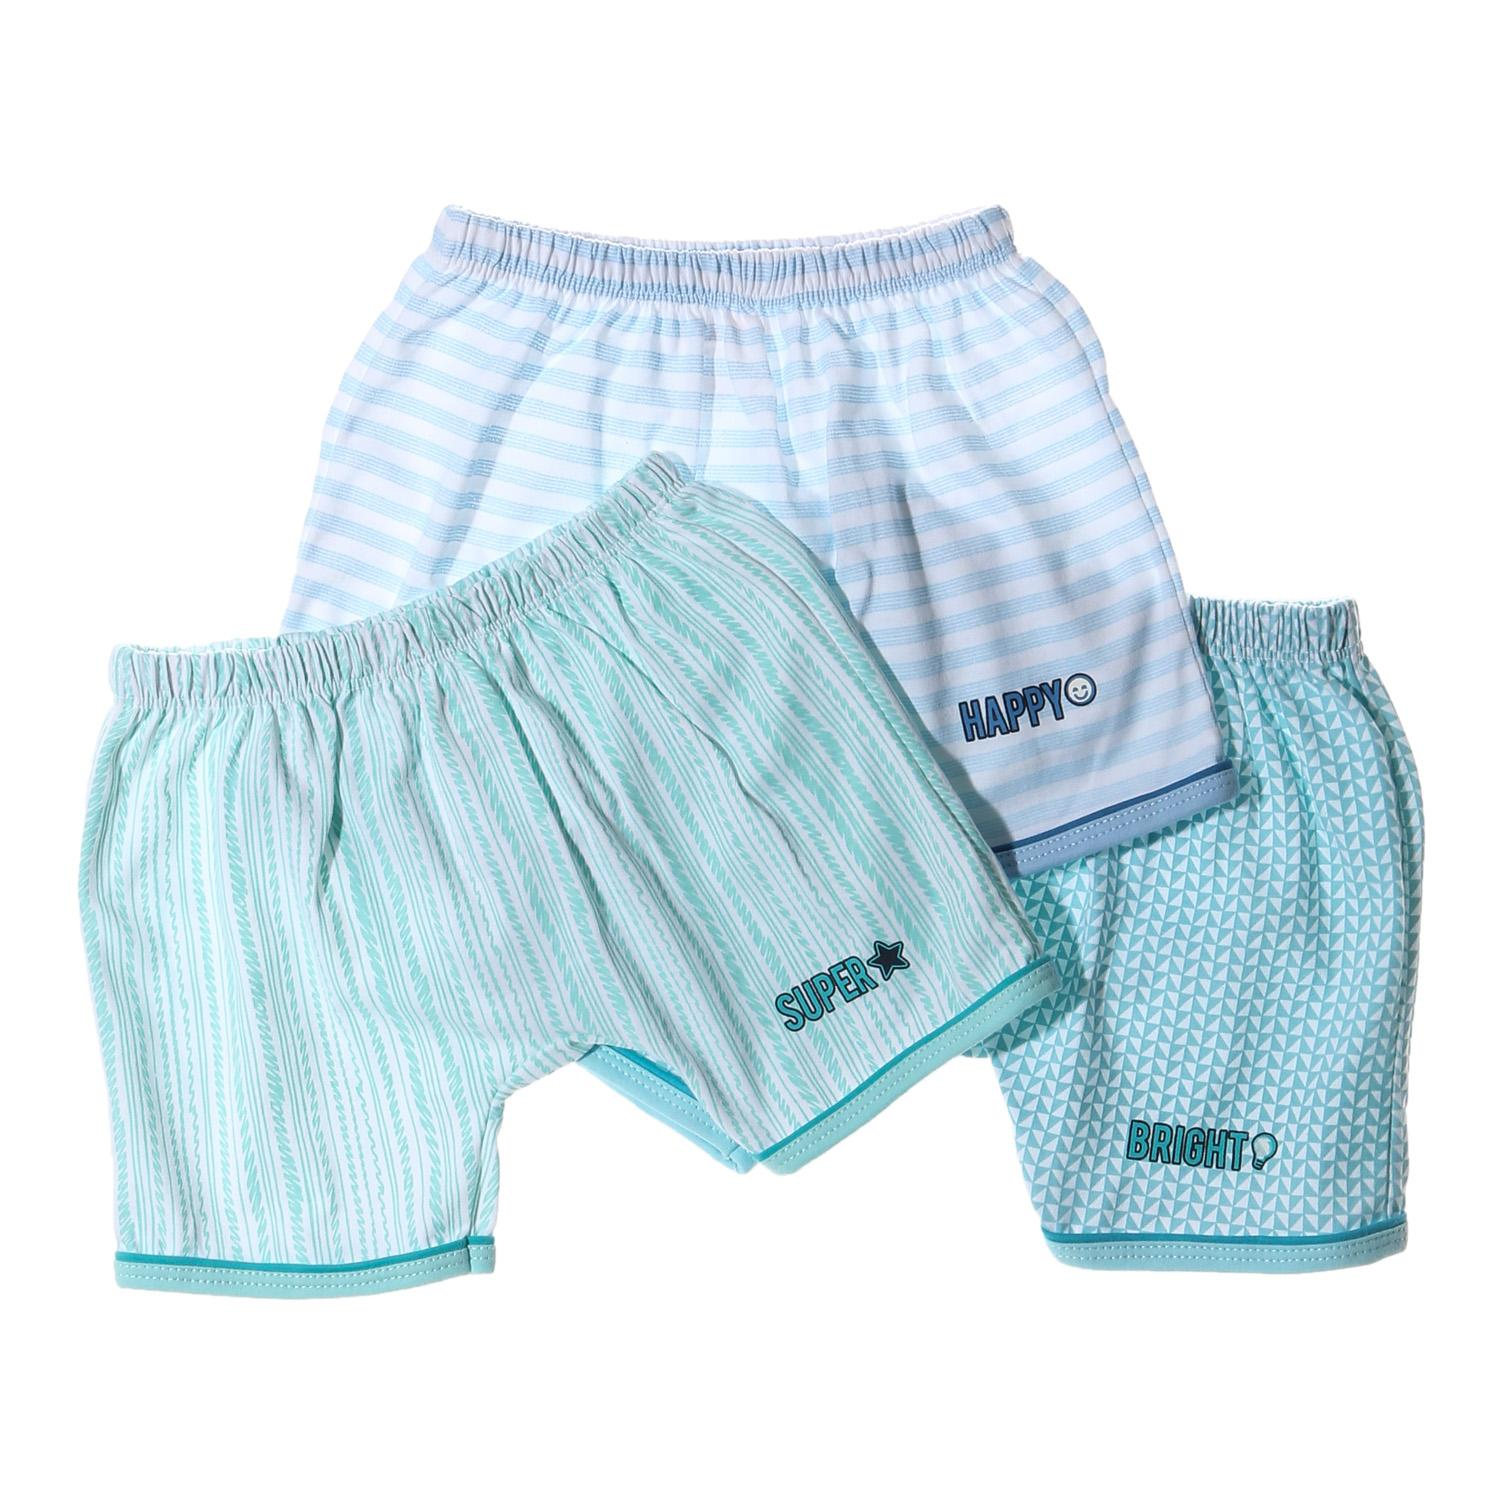 Hush Hush Baby Boys 3-Piece Bright Happy Super Shorts Set By The Sm Store.